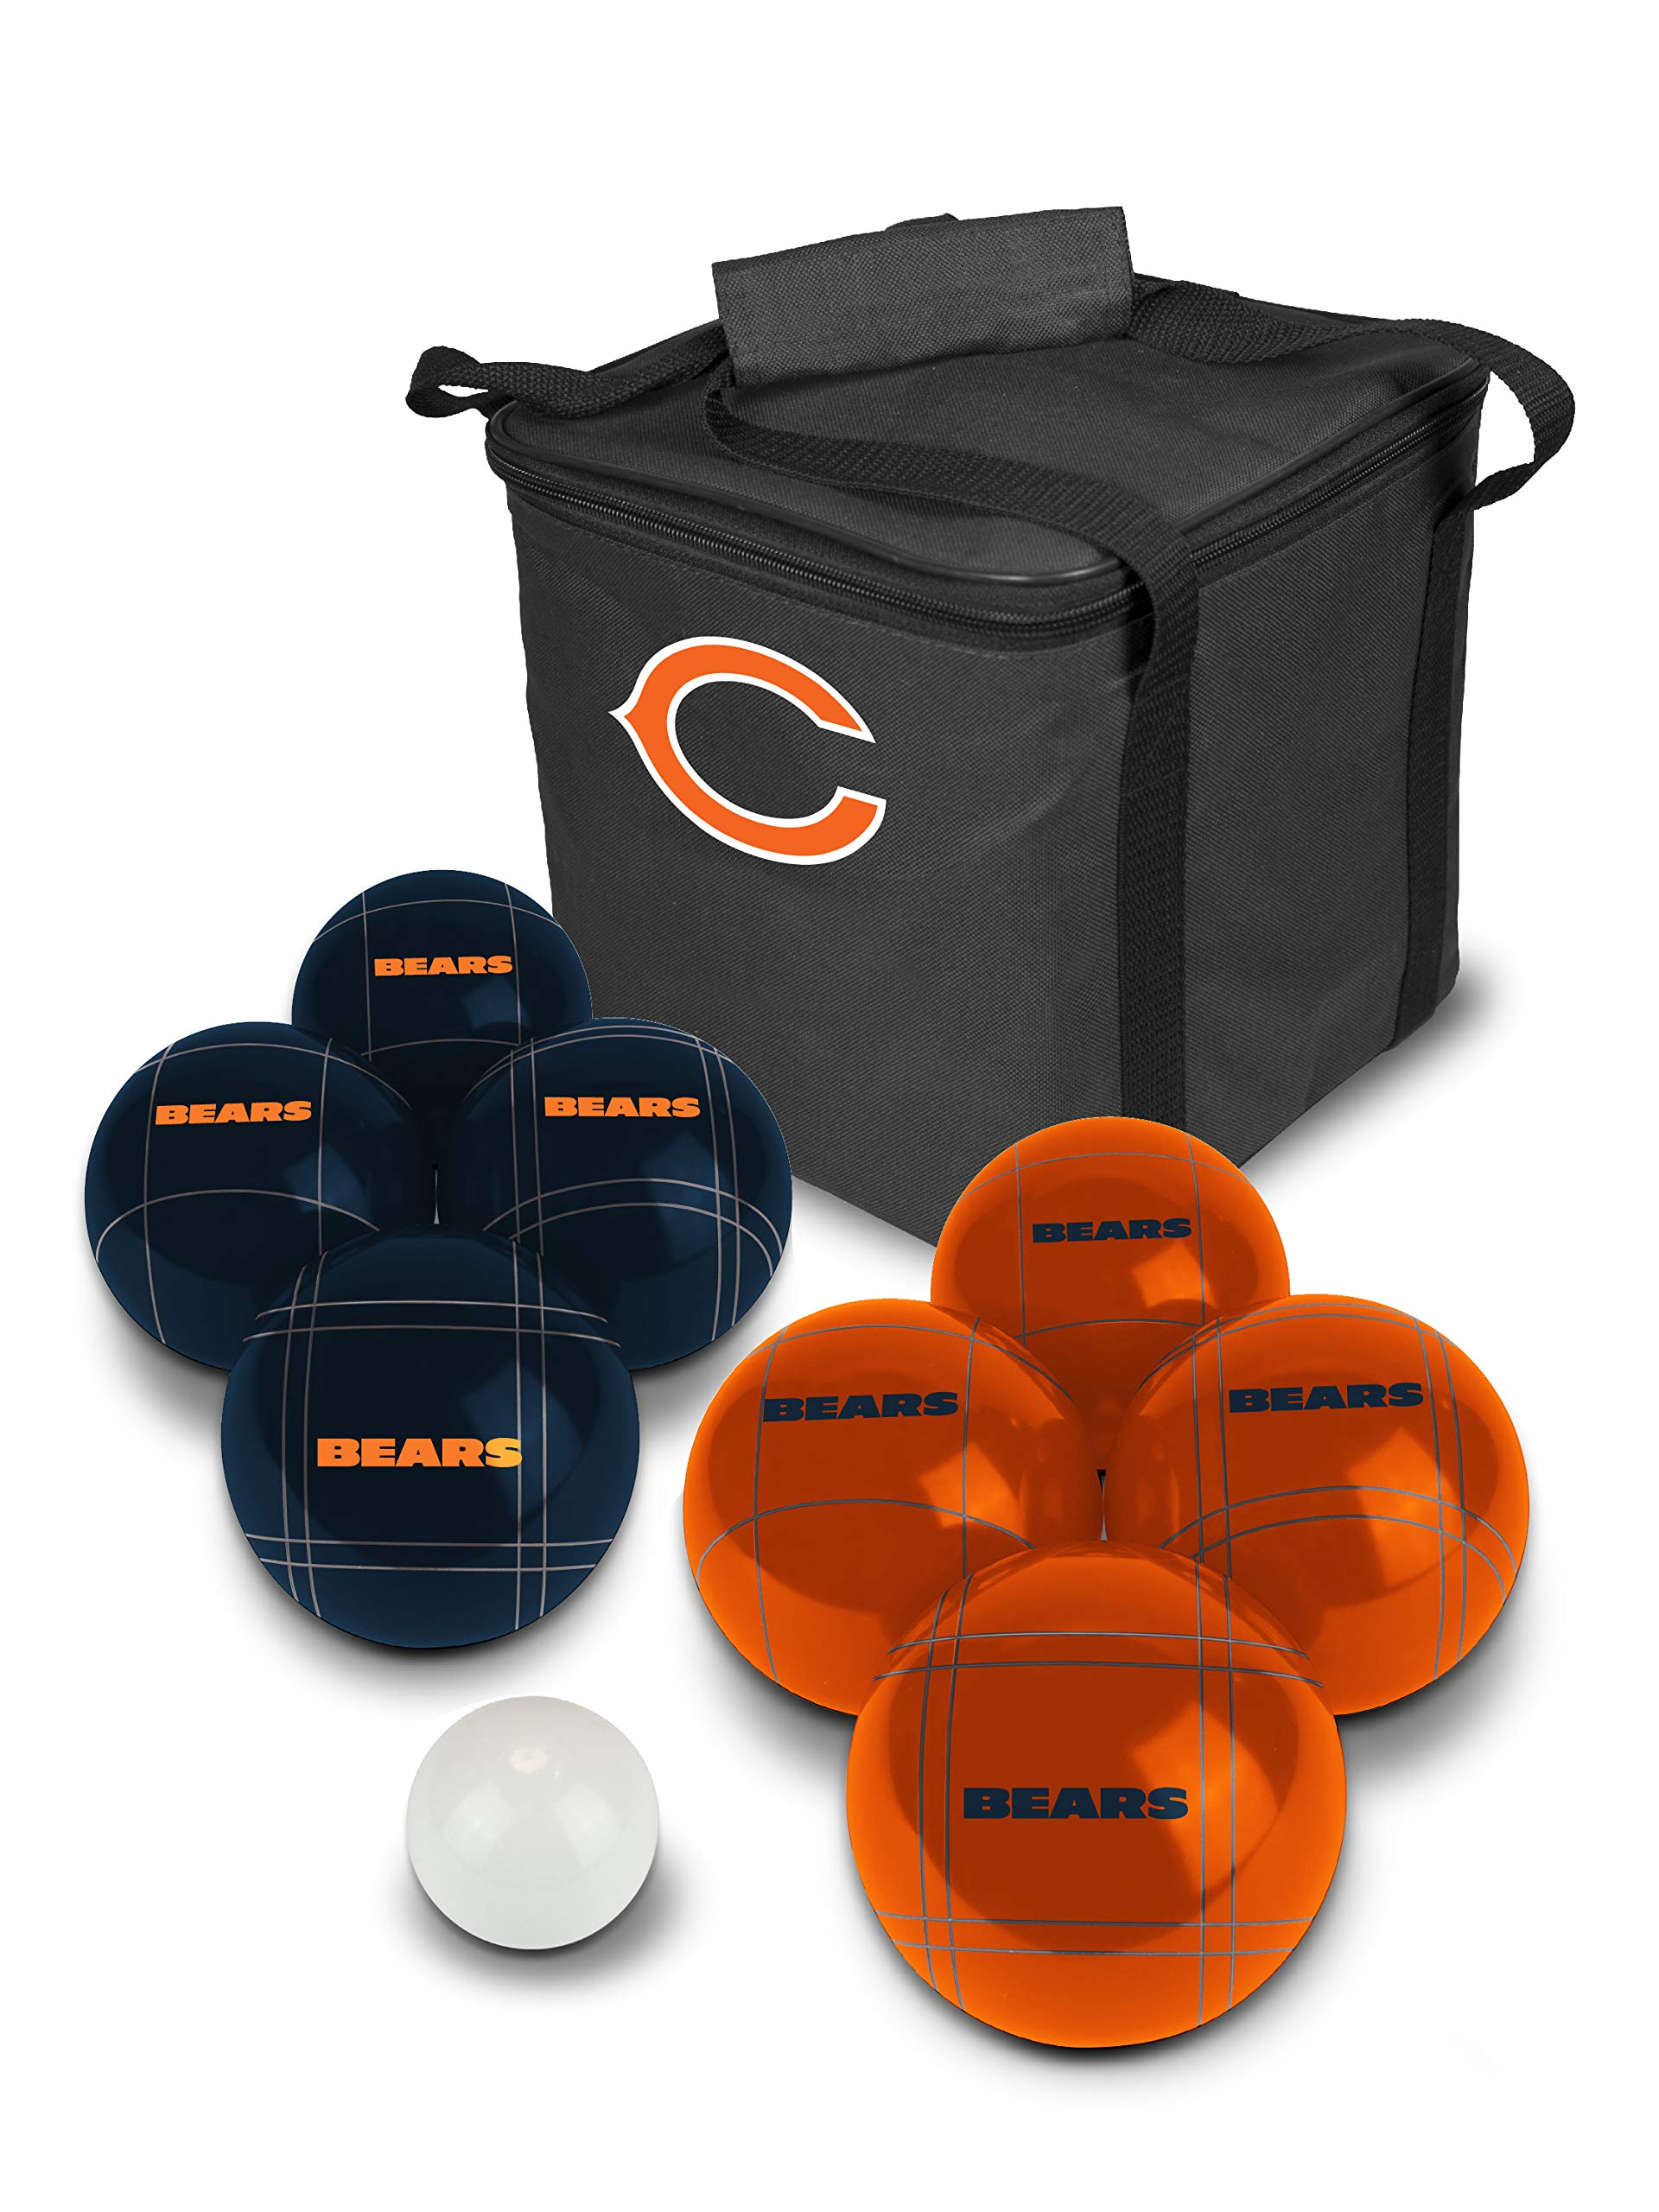 PROLINE NFL Chicago Bears Bocce Ball Set by PROLINE (Image #1)